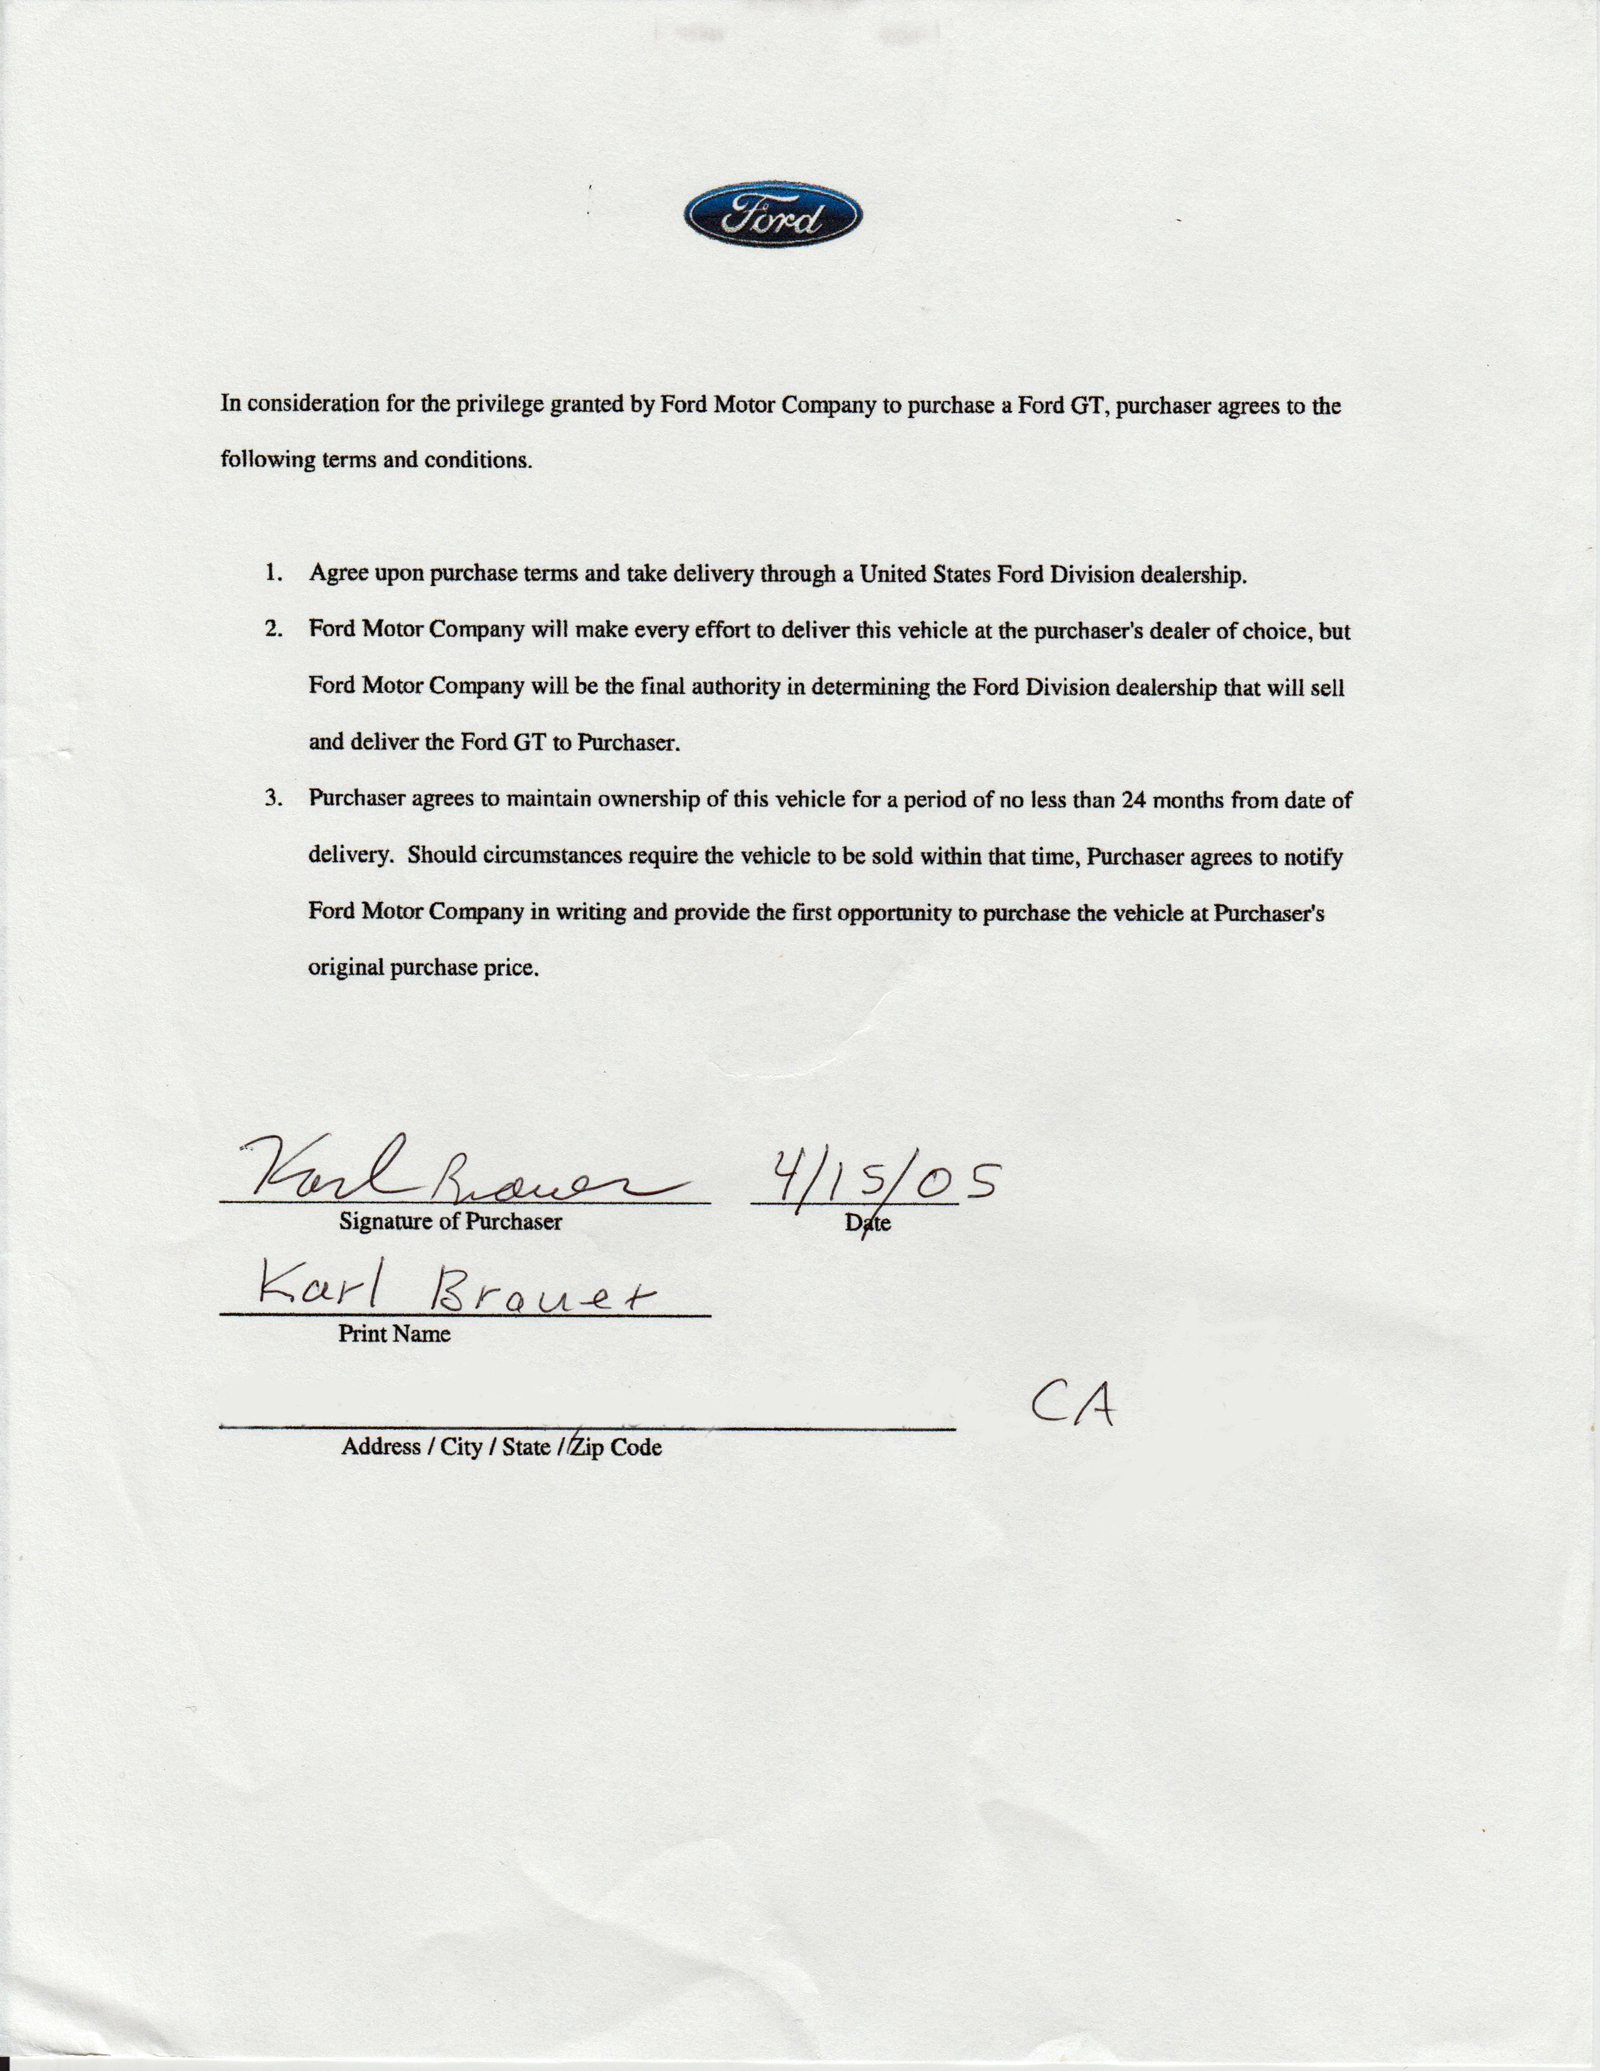 2005 Ford GT Purchase Agreement